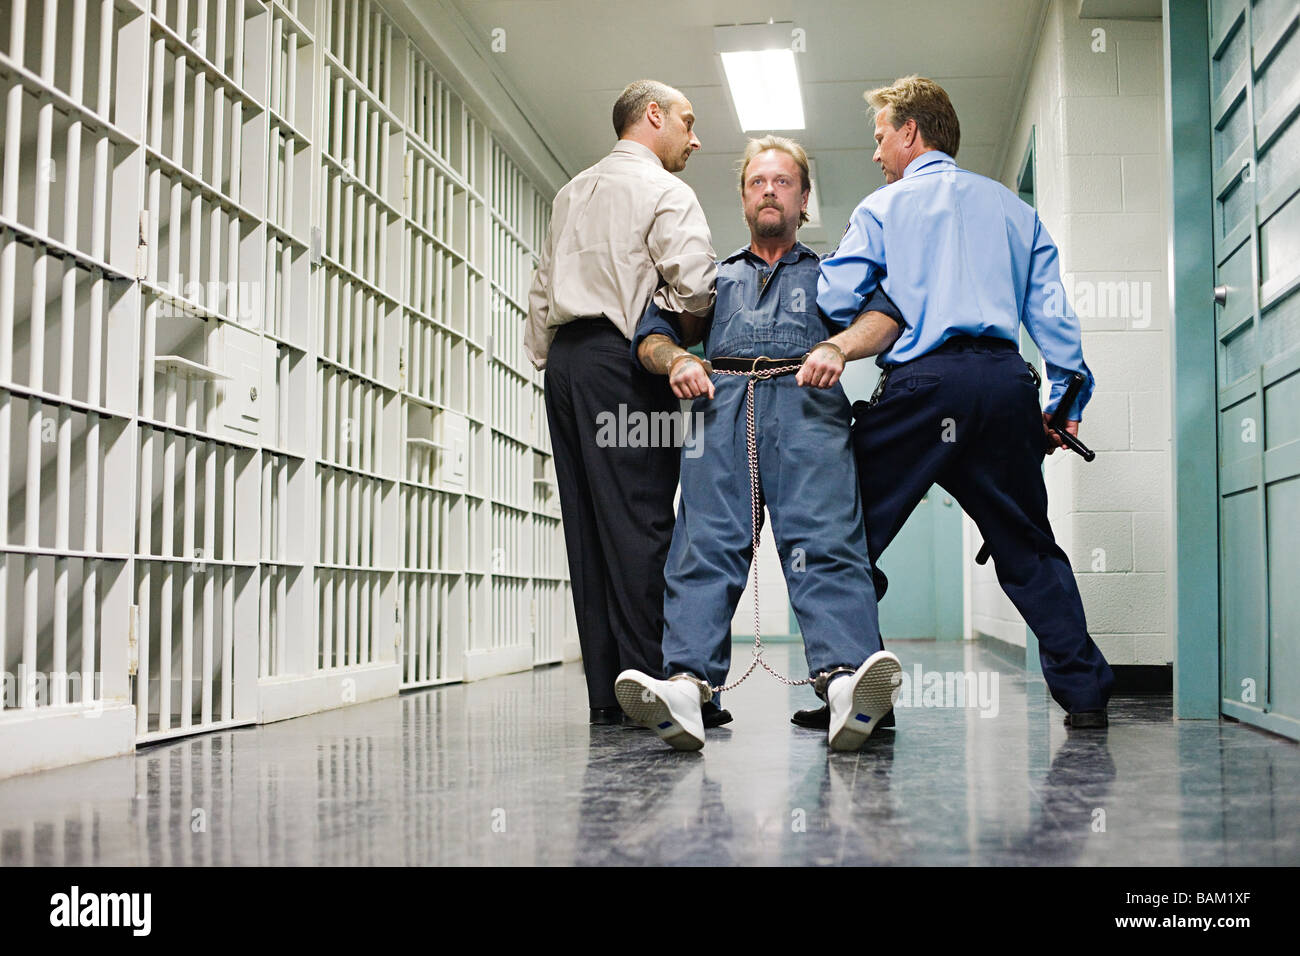 Prisoner being dragged down corridor - Stock Image